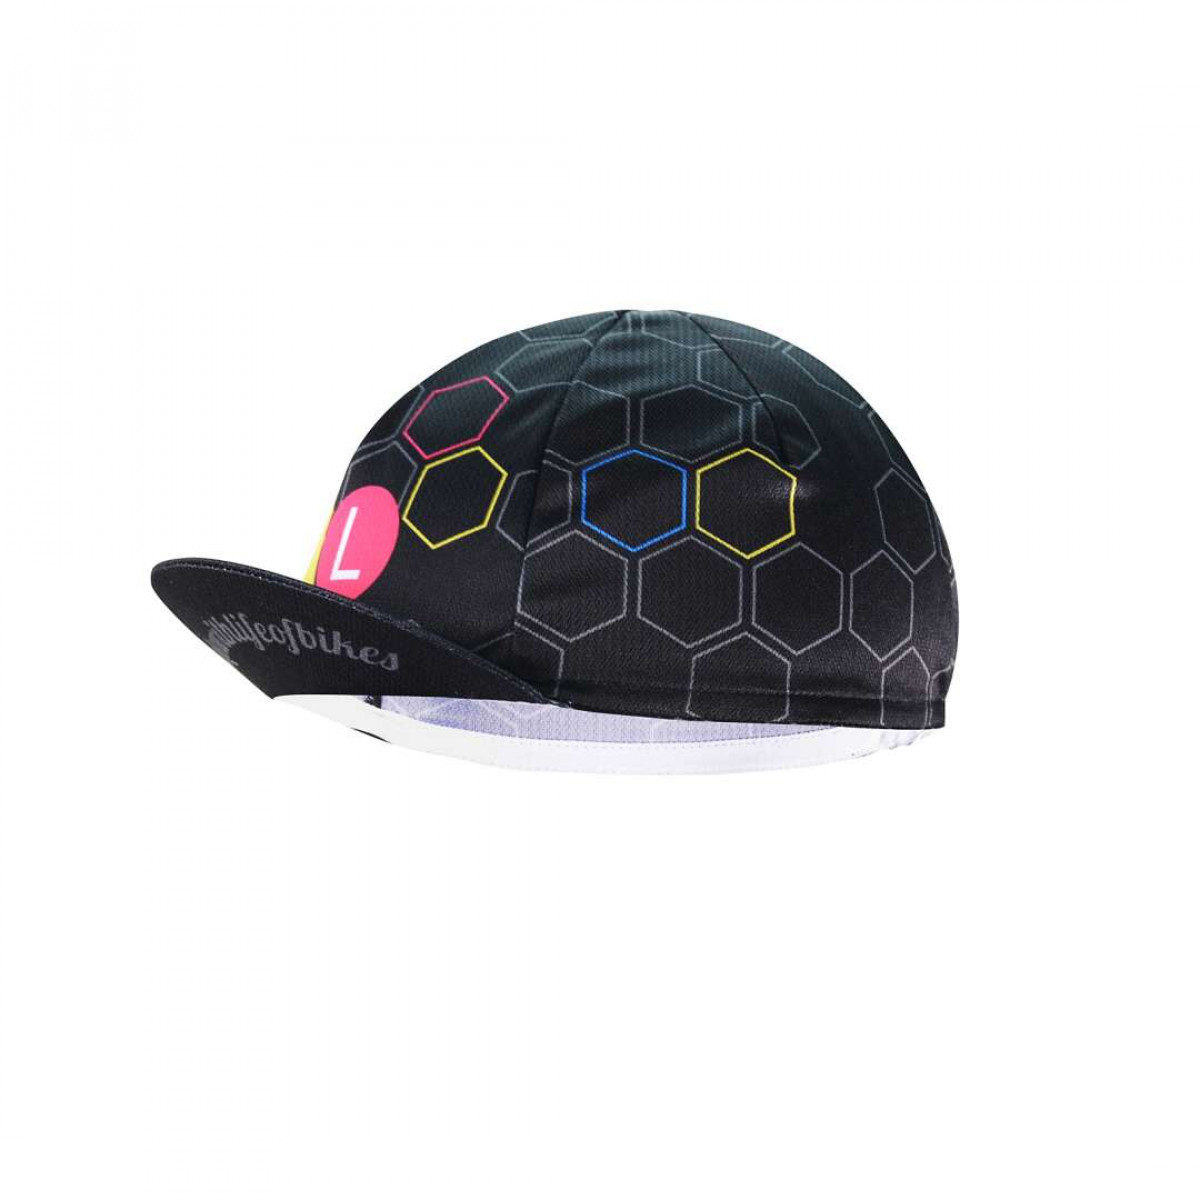 LifeofBikes ACC0011 Left2 WEB Cycling Cap